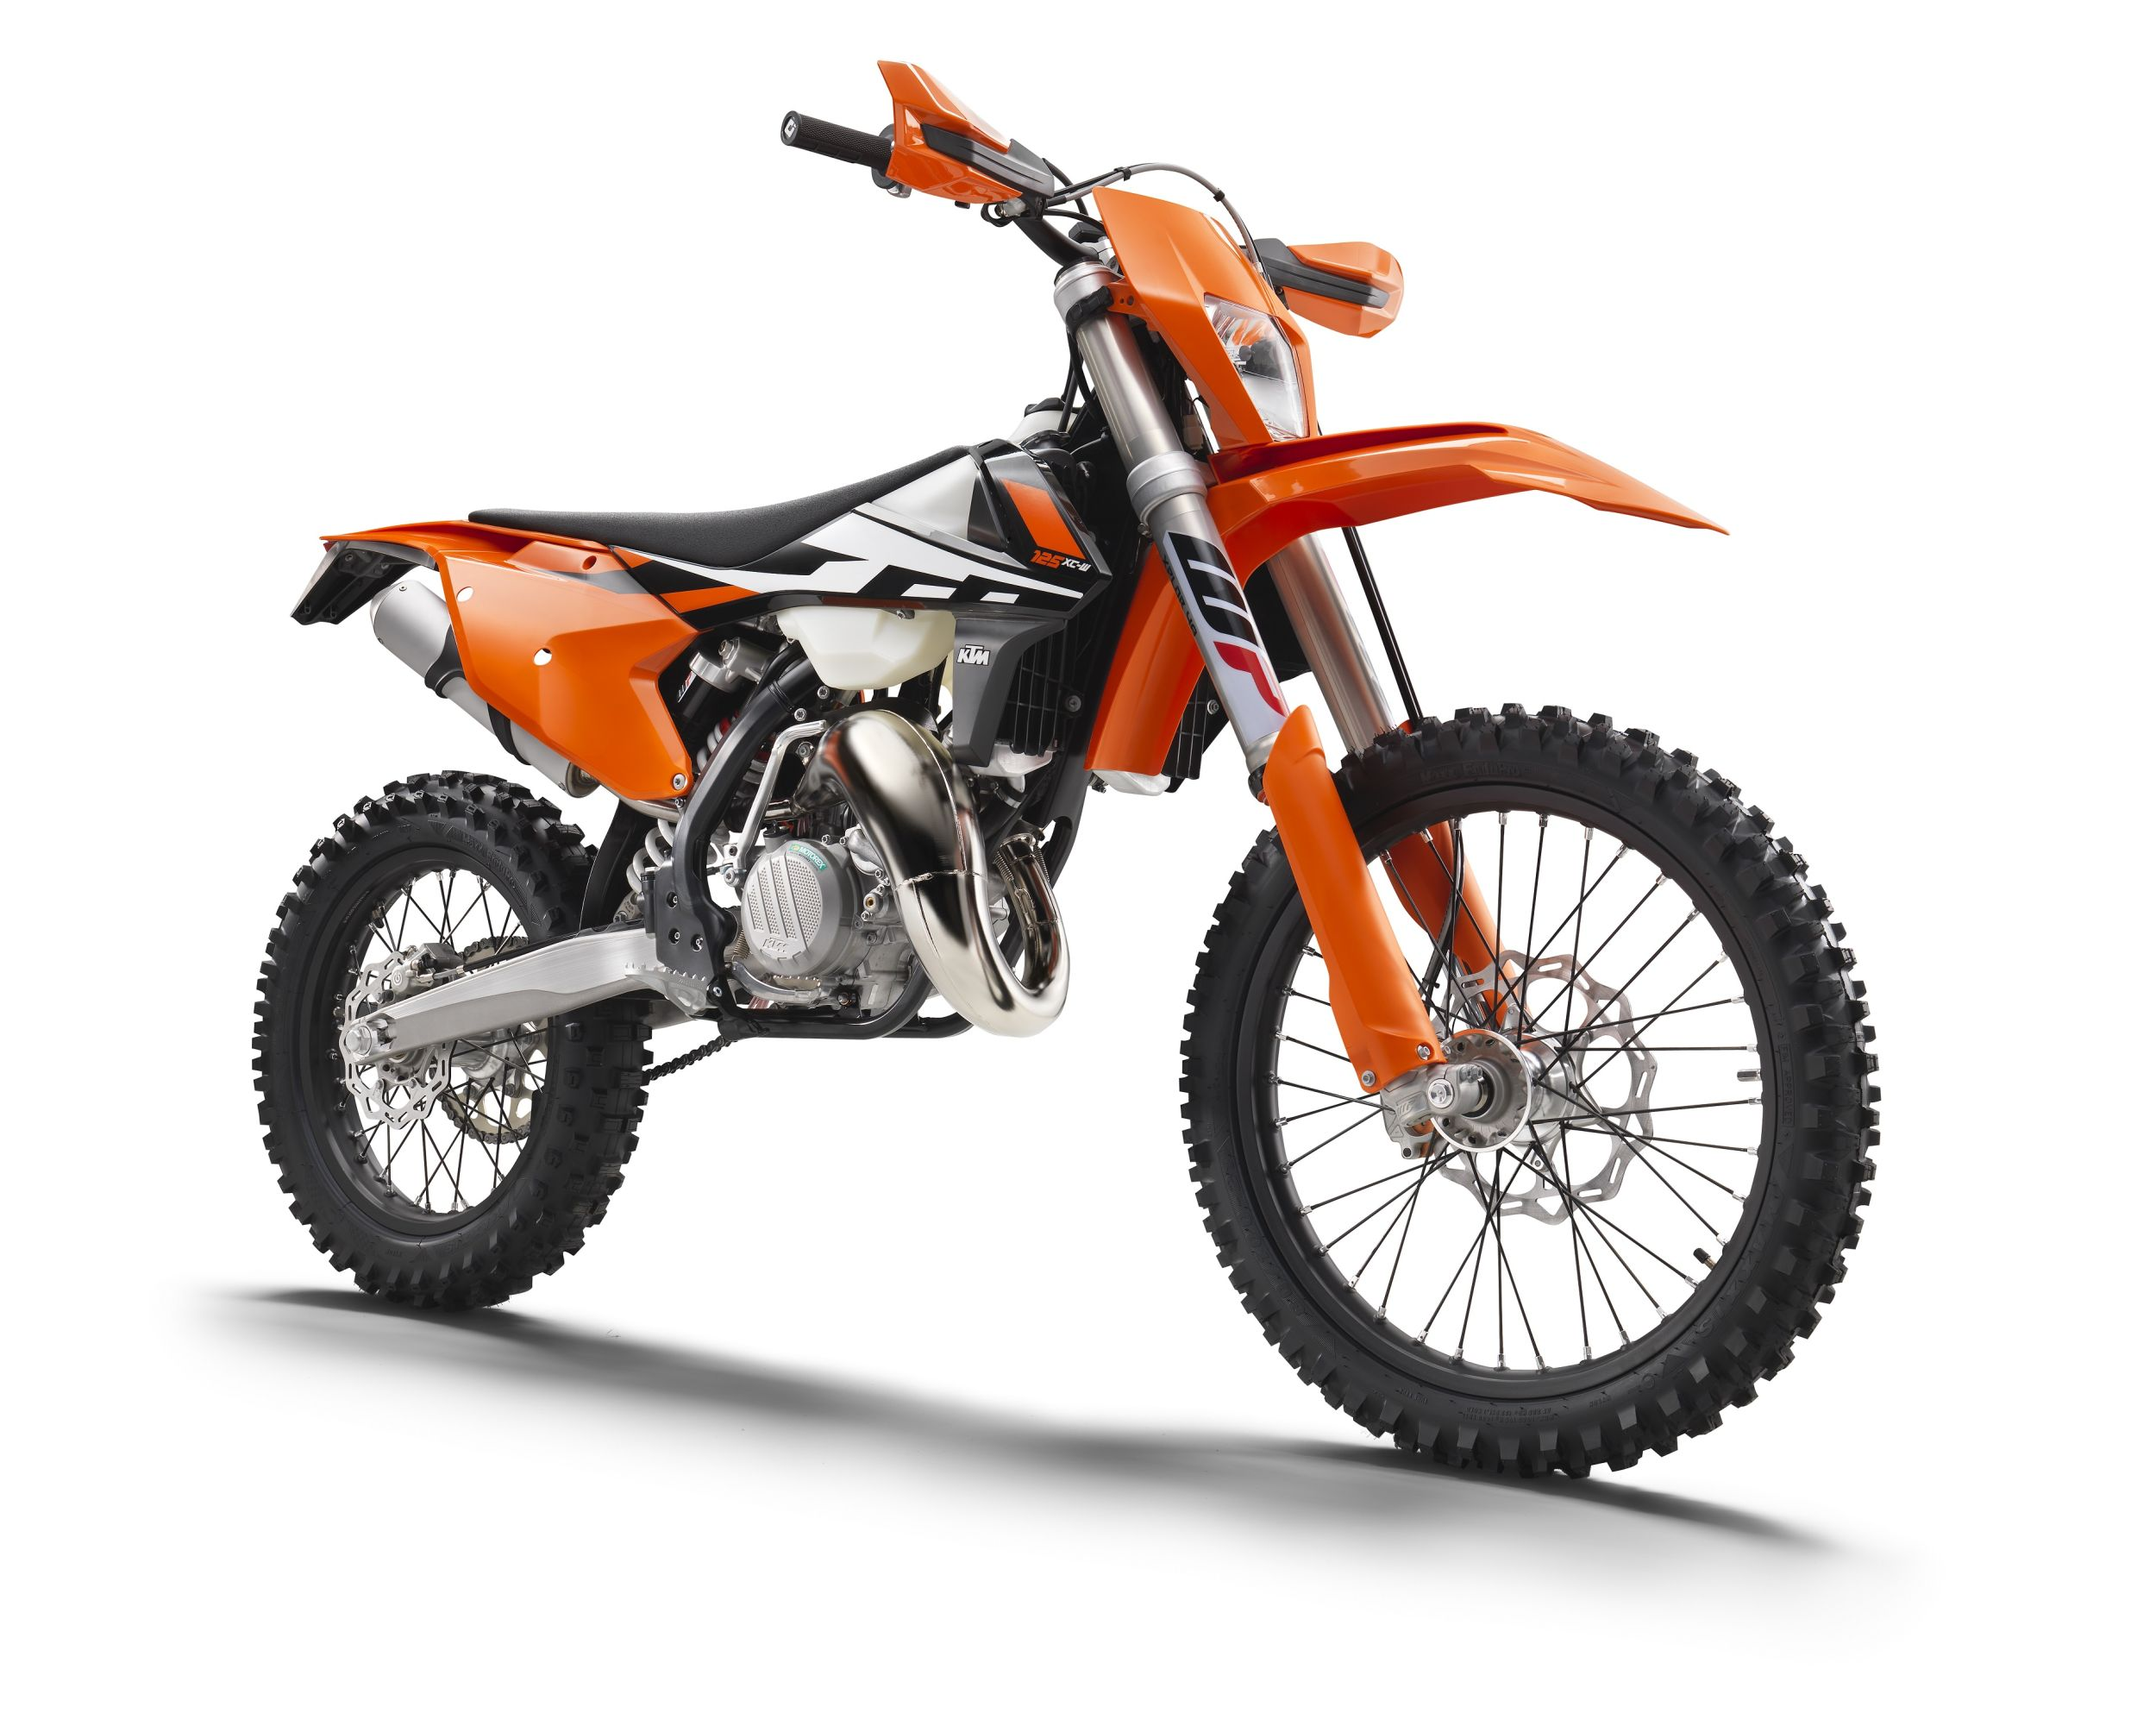 gebrauchte ktm 125 xc w motorr der kaufen. Black Bedroom Furniture Sets. Home Design Ideas